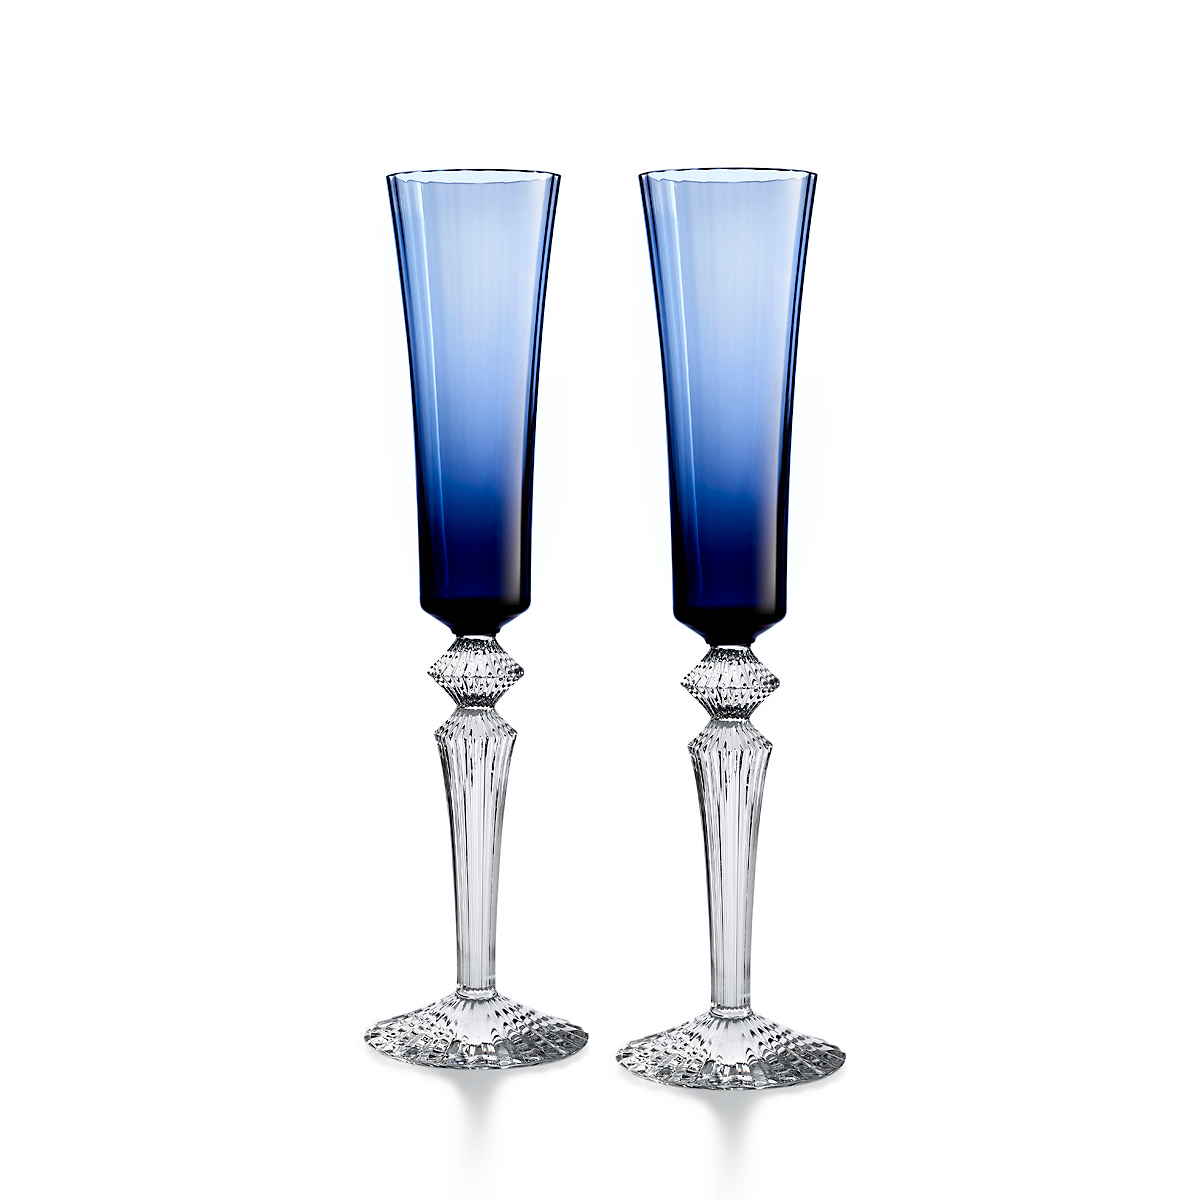 Baccarat Mille Nuits Flutissimo, Set of 2 Midnight Blue